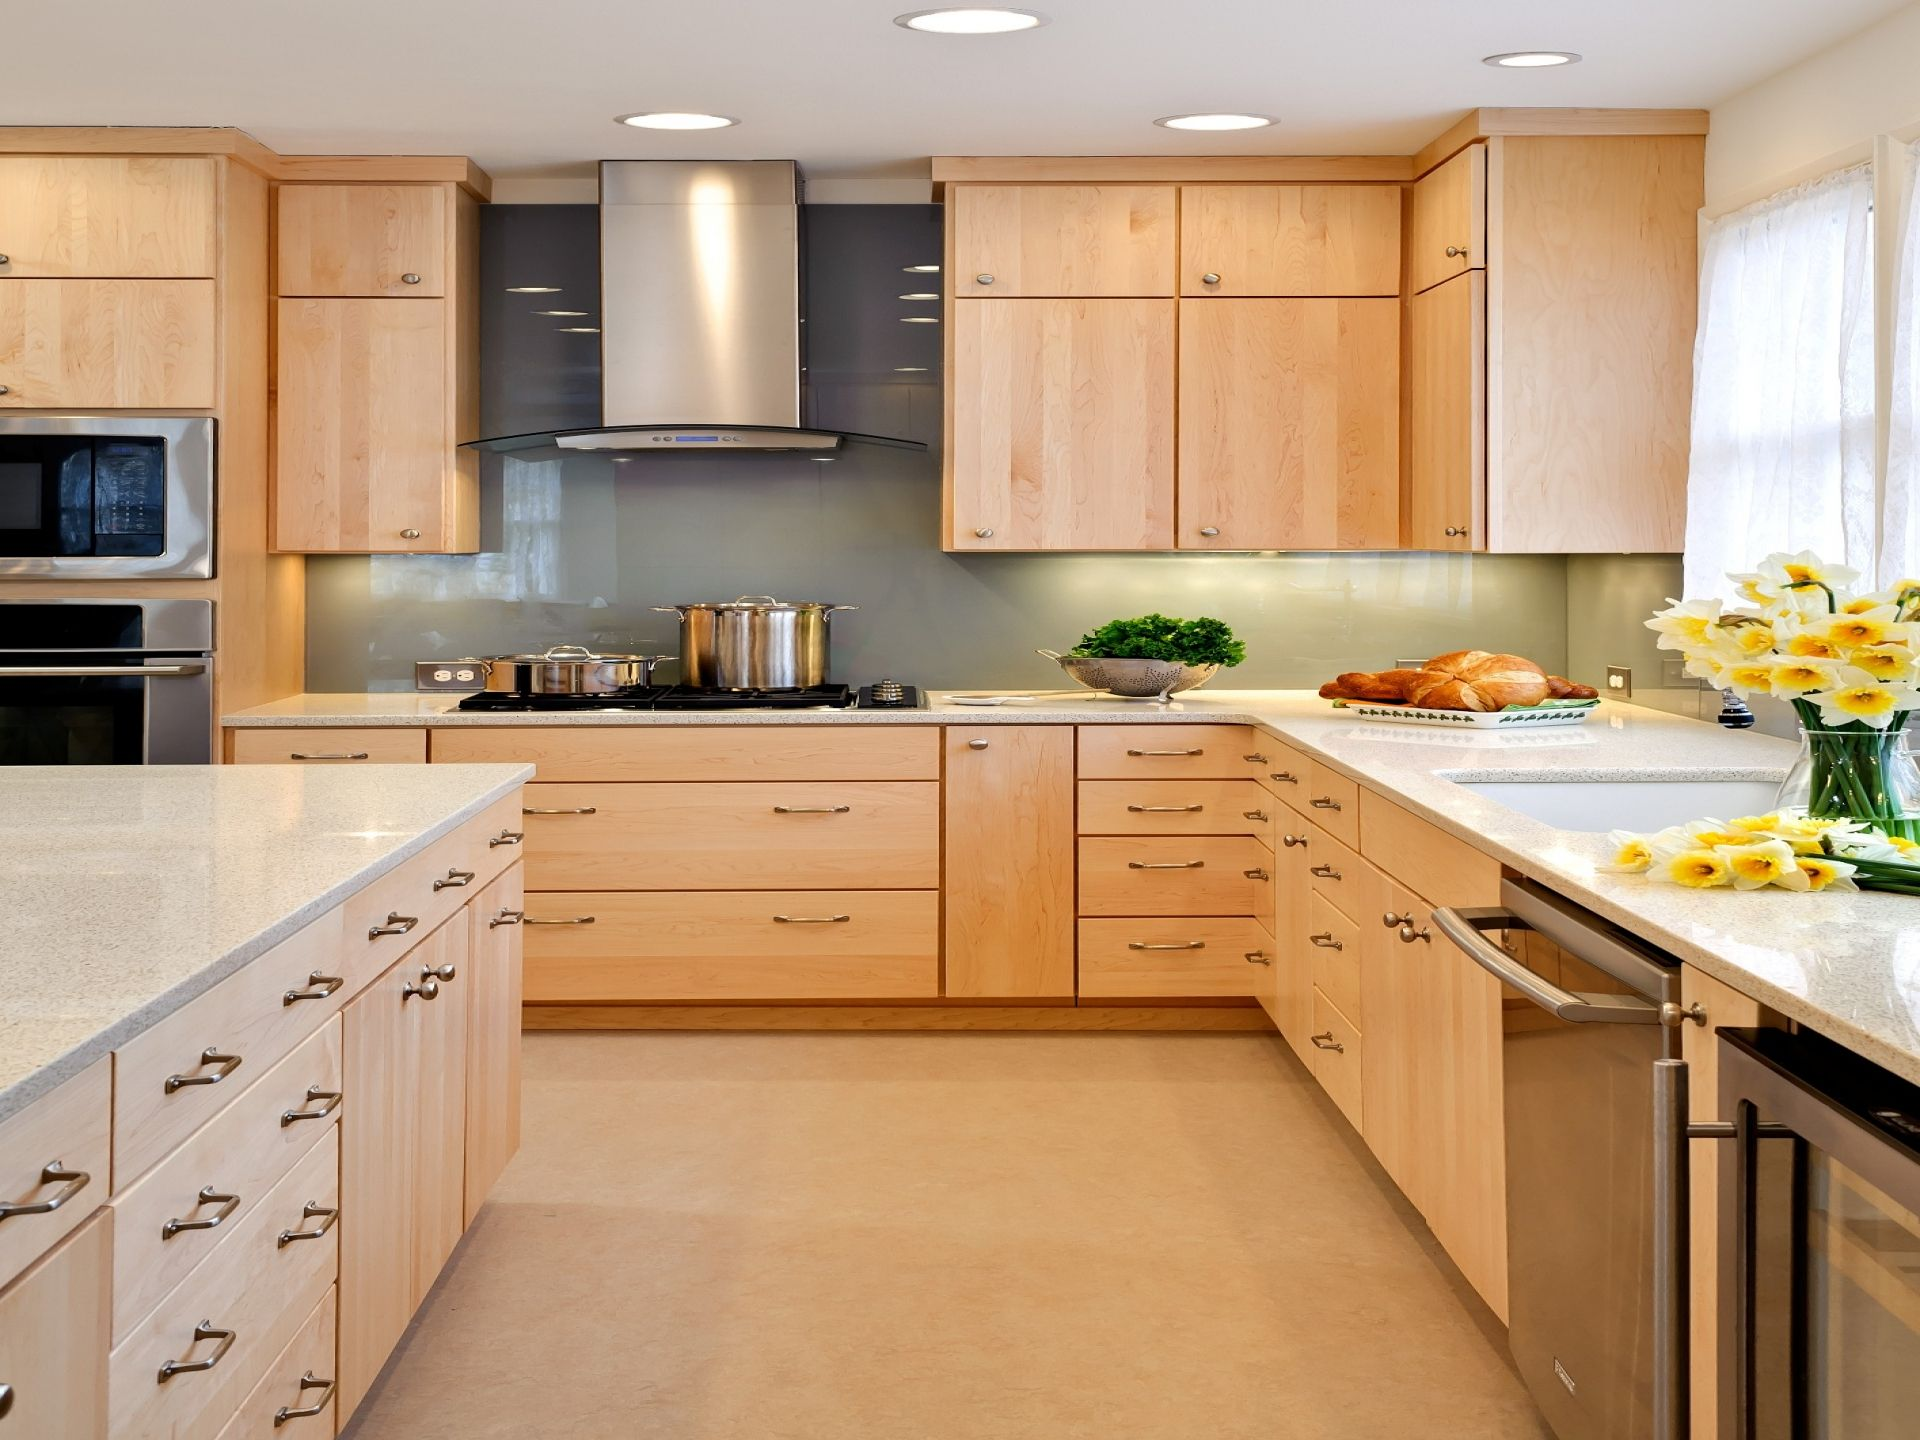 Maple Kitchen Cabinets To Have Birch Kitchen Cabinets Maple Kitchen Cabinets Contemporary Kitchen